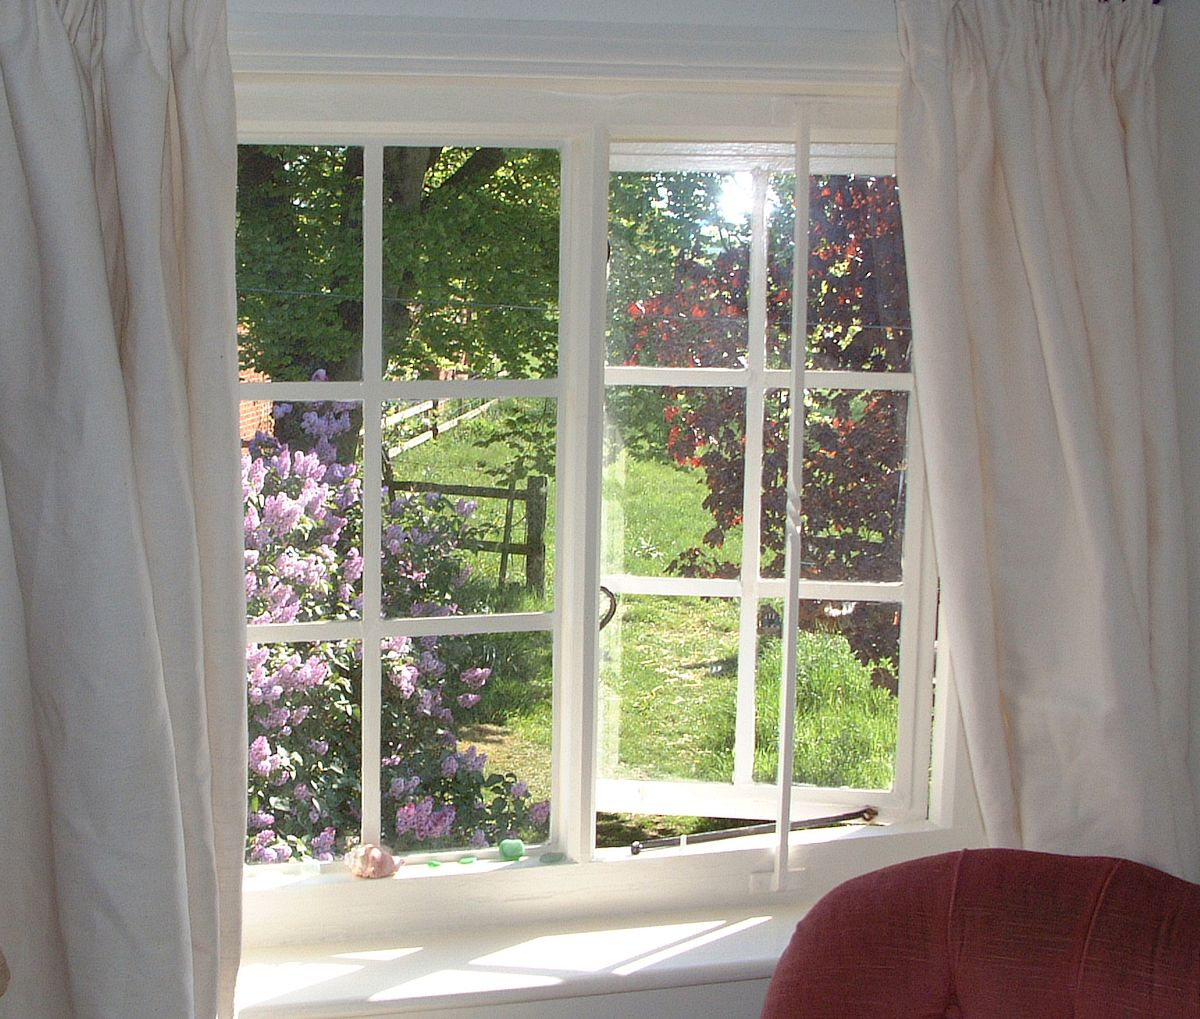 windowviewcropped2003